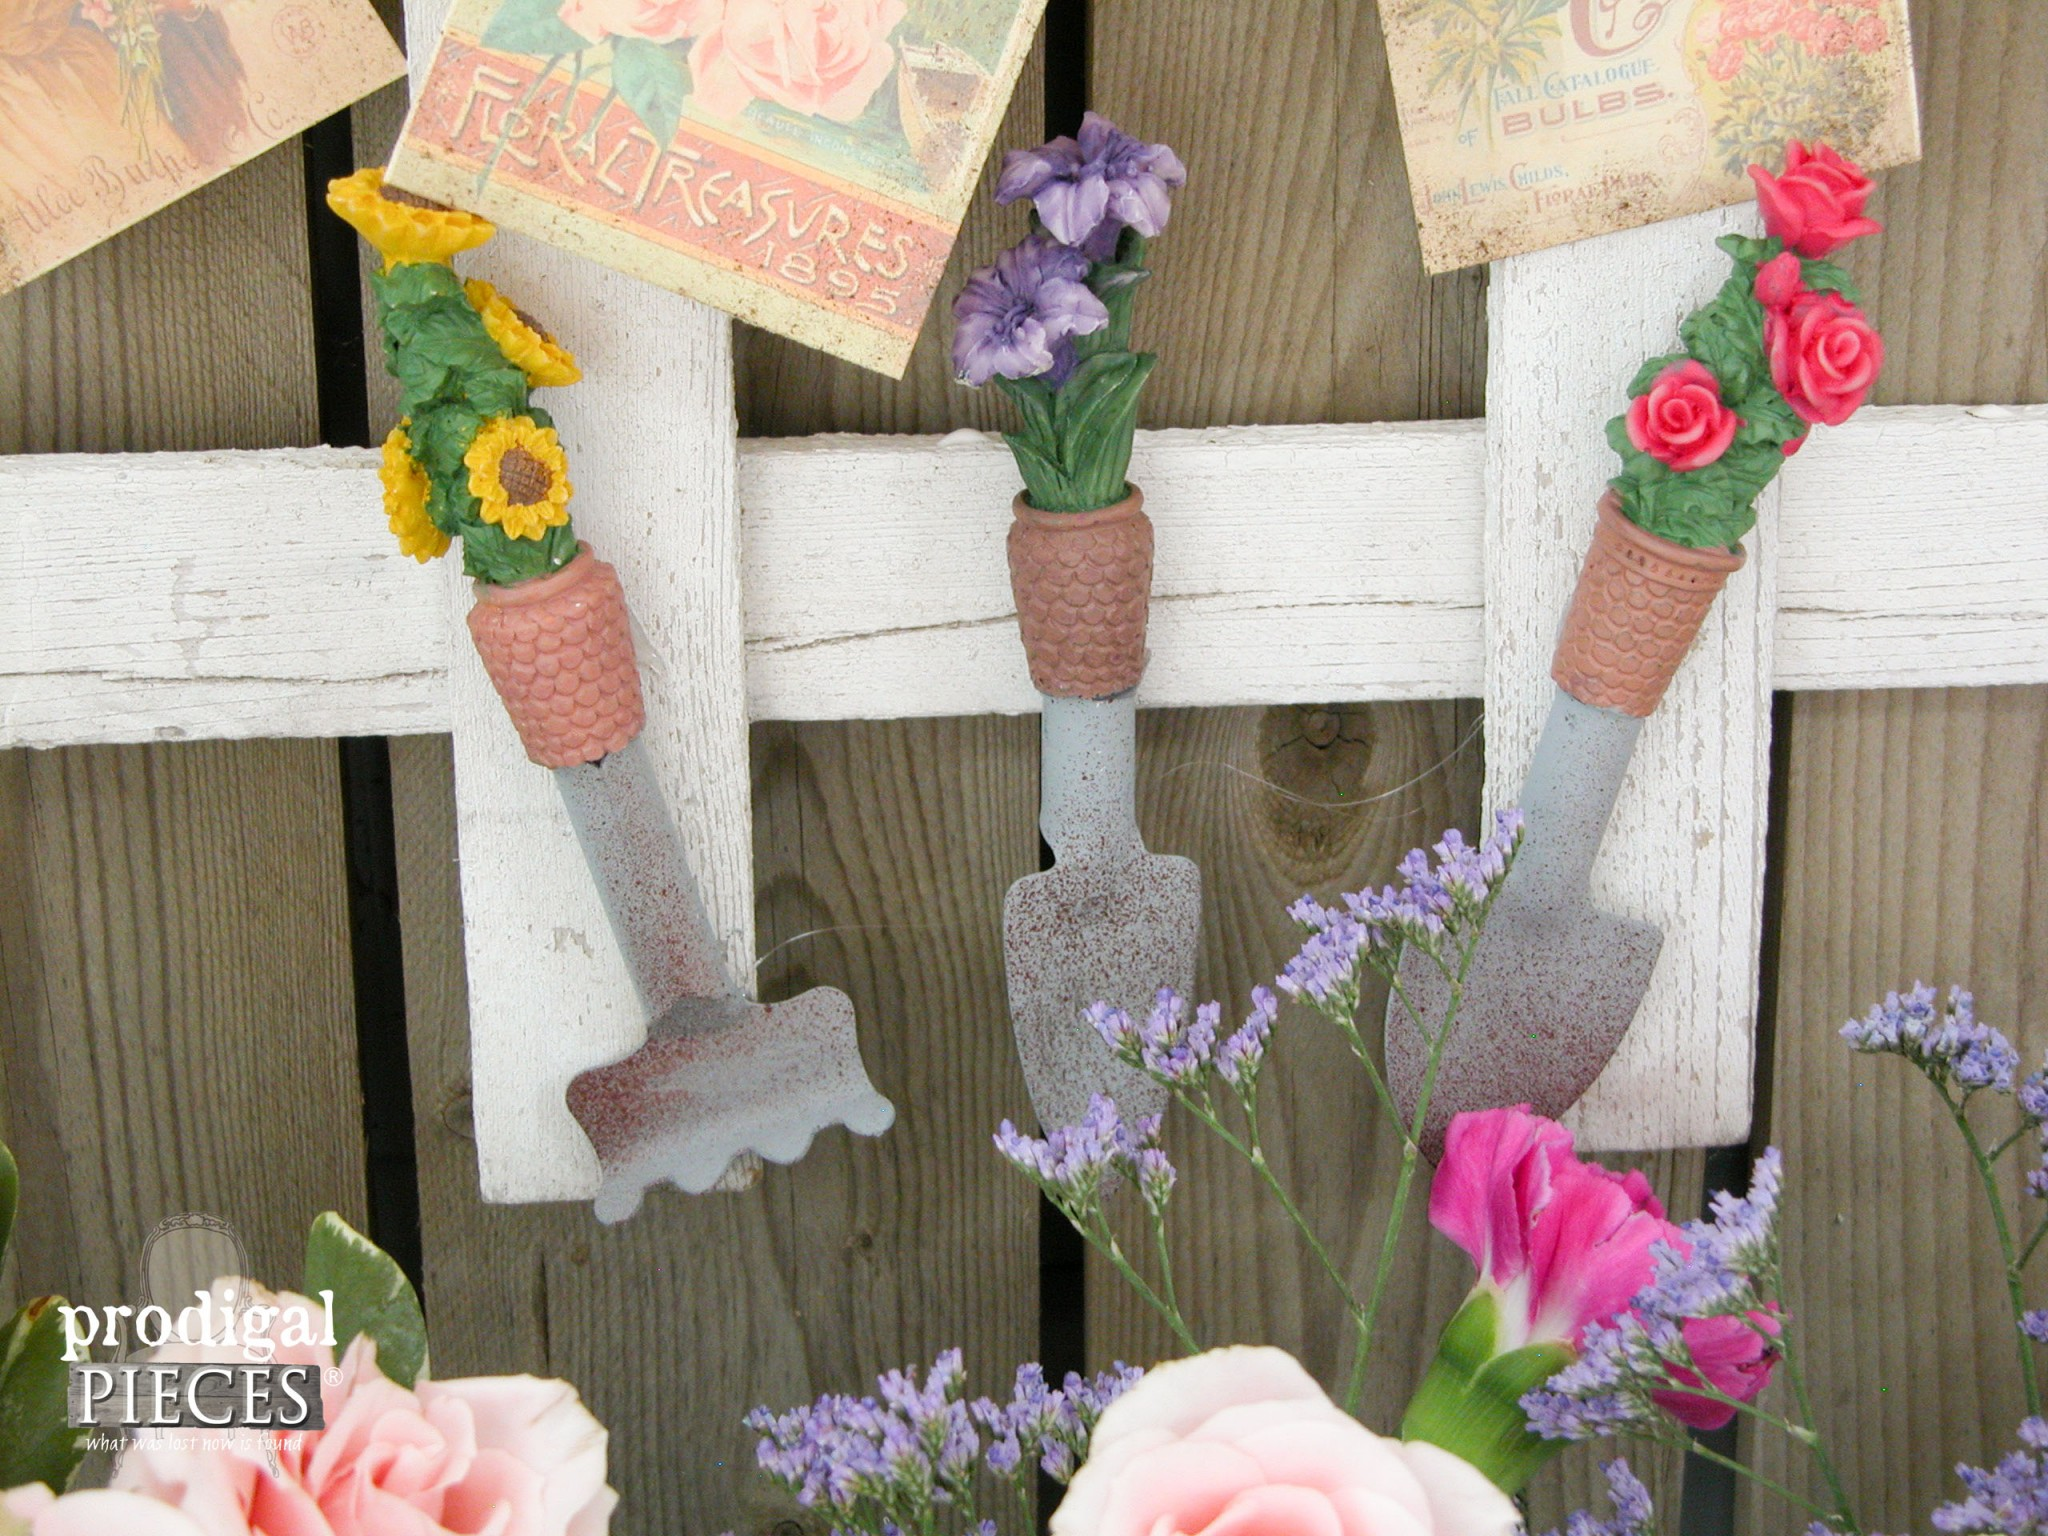 Miniature Garden Tools on Repurposed PIcket Fence by Prodigal Pieces | www.prodigalpieces.com